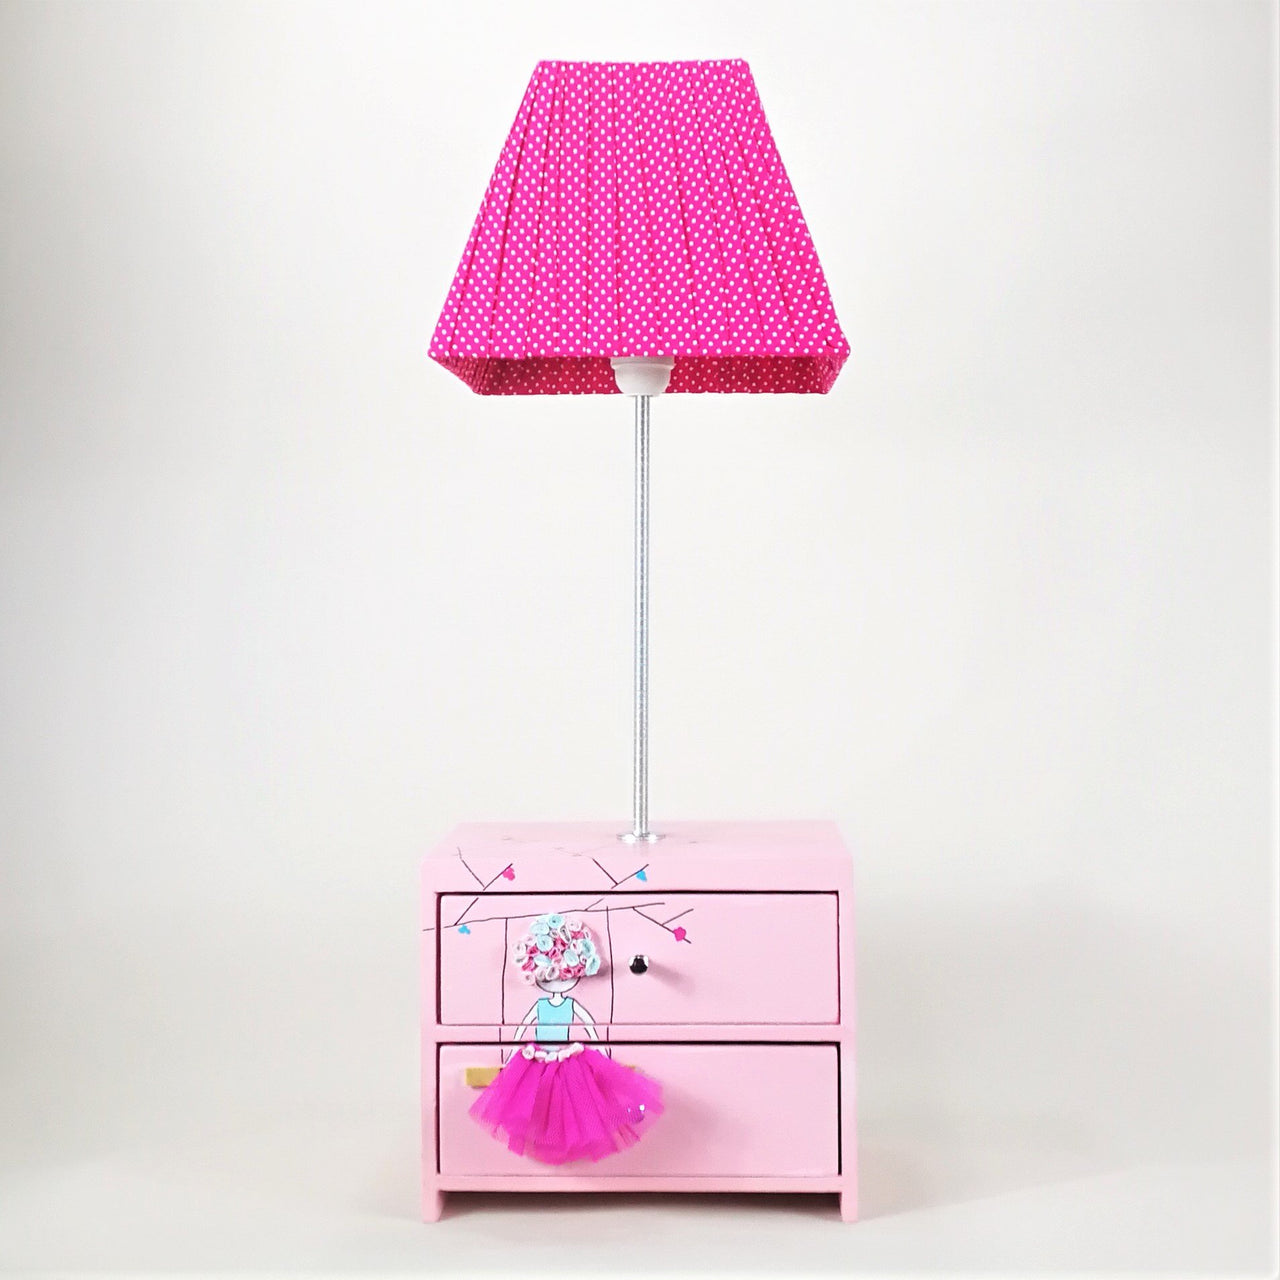 Girl on a Swing Side Lamp with Little Drawers - Rooms for Rascals, a Leafy Lanes Retailers Ltd business